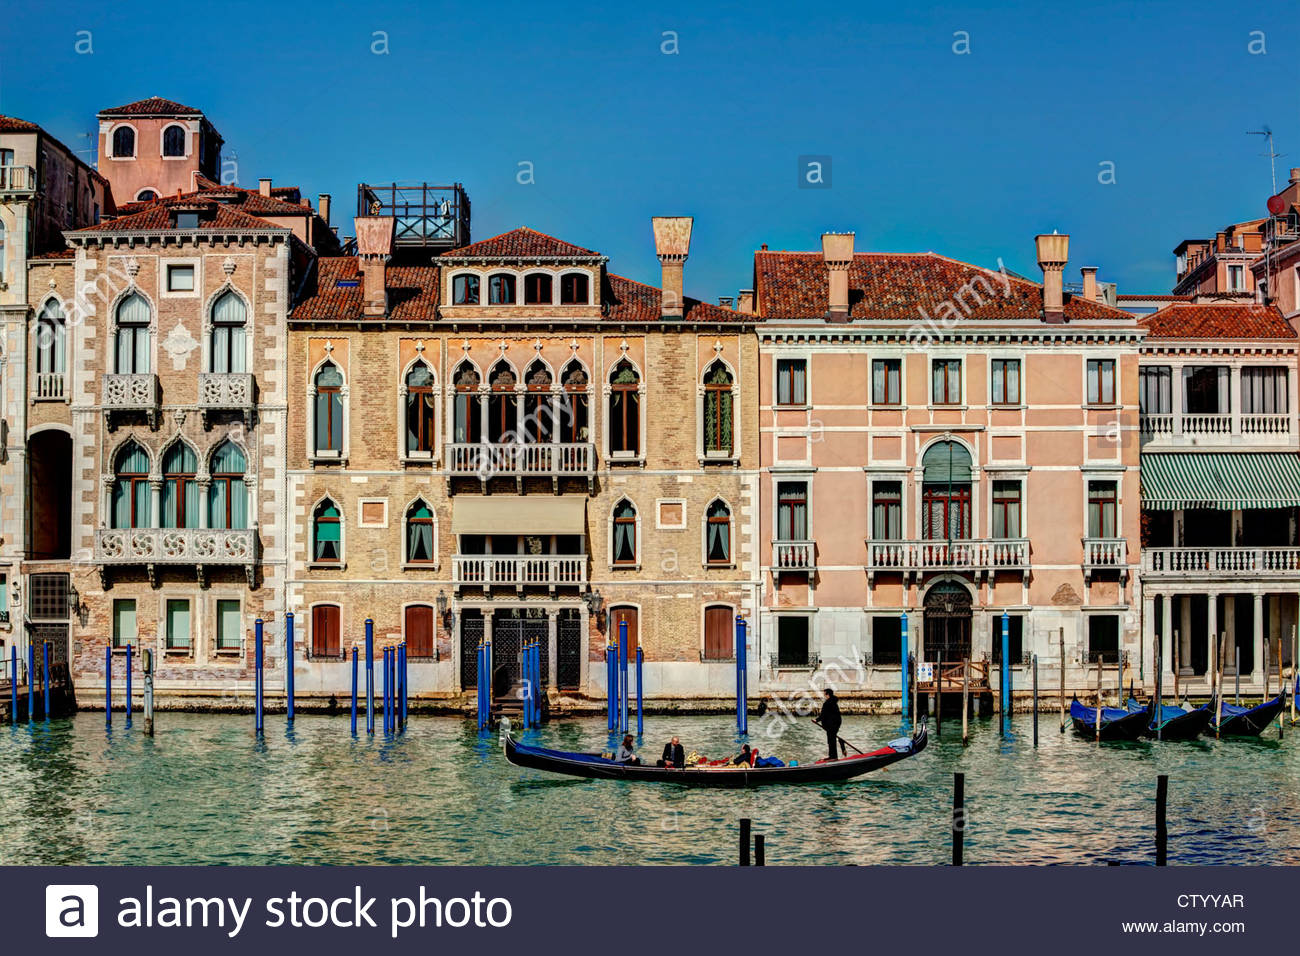 A Gondola Glides Past Beautiful Venetian Buildings On The Grand Canal,  Venice, Italy